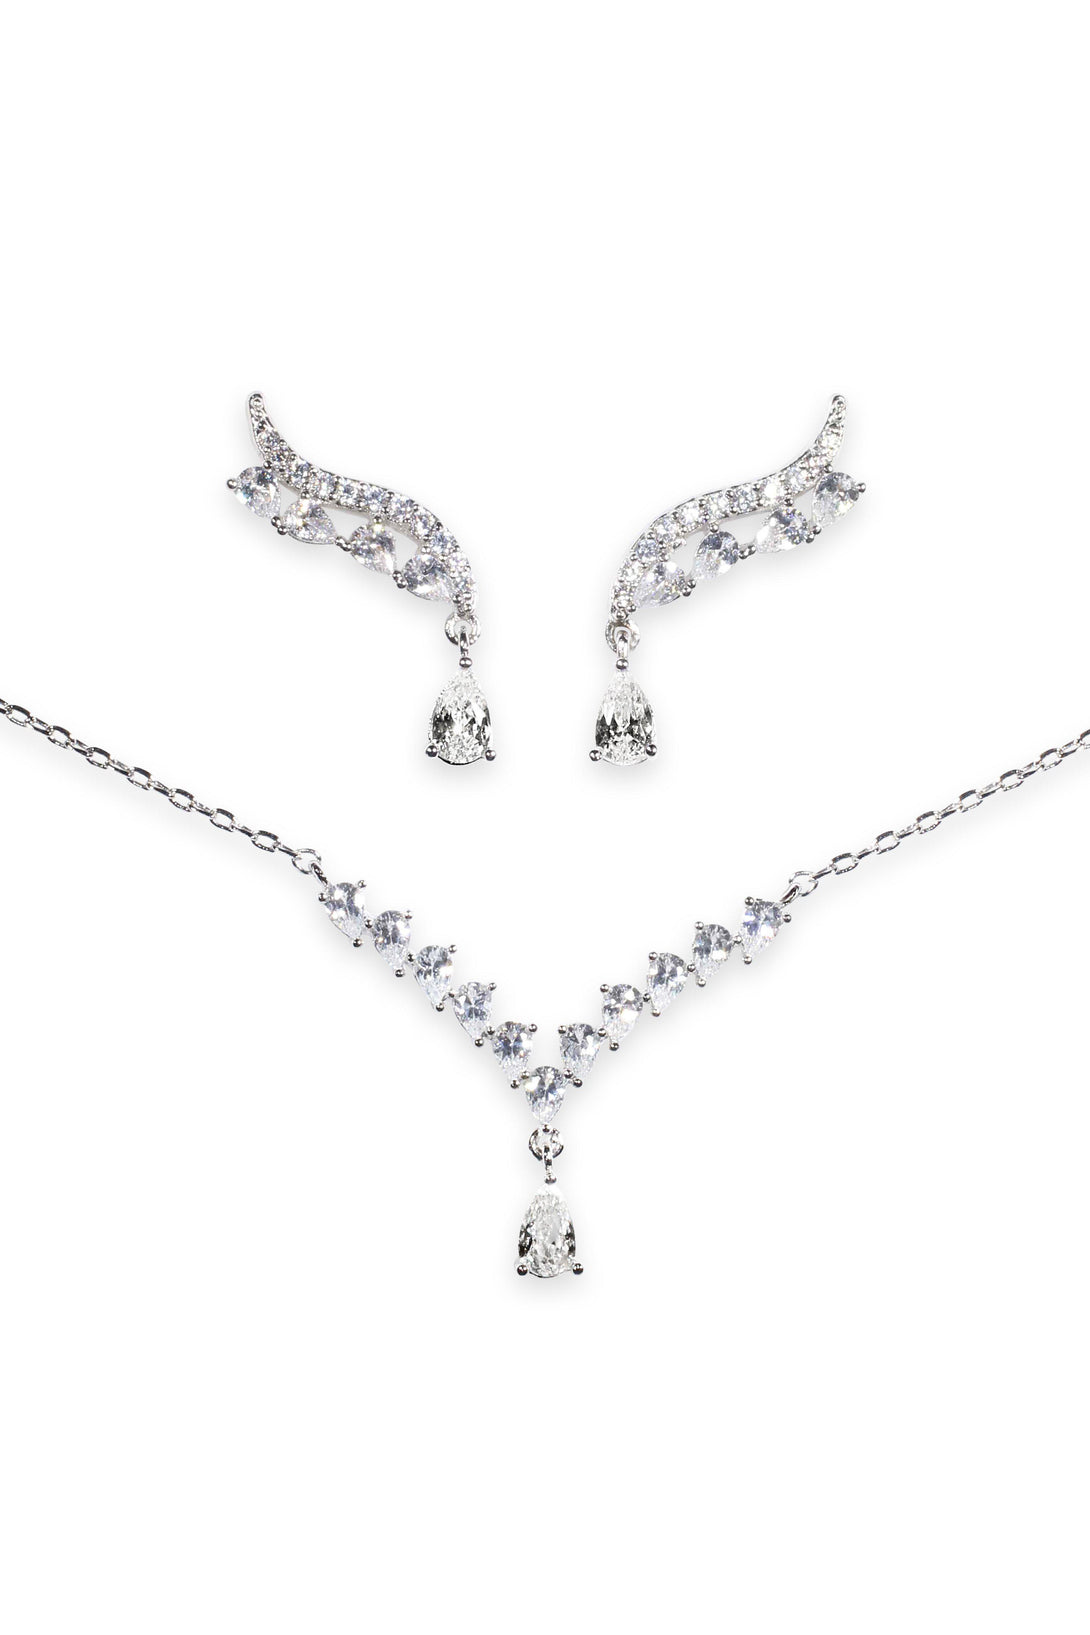 Glamour Set Designer Collection Crystal Drops in Sterling Silver (Earrings, Necklace)